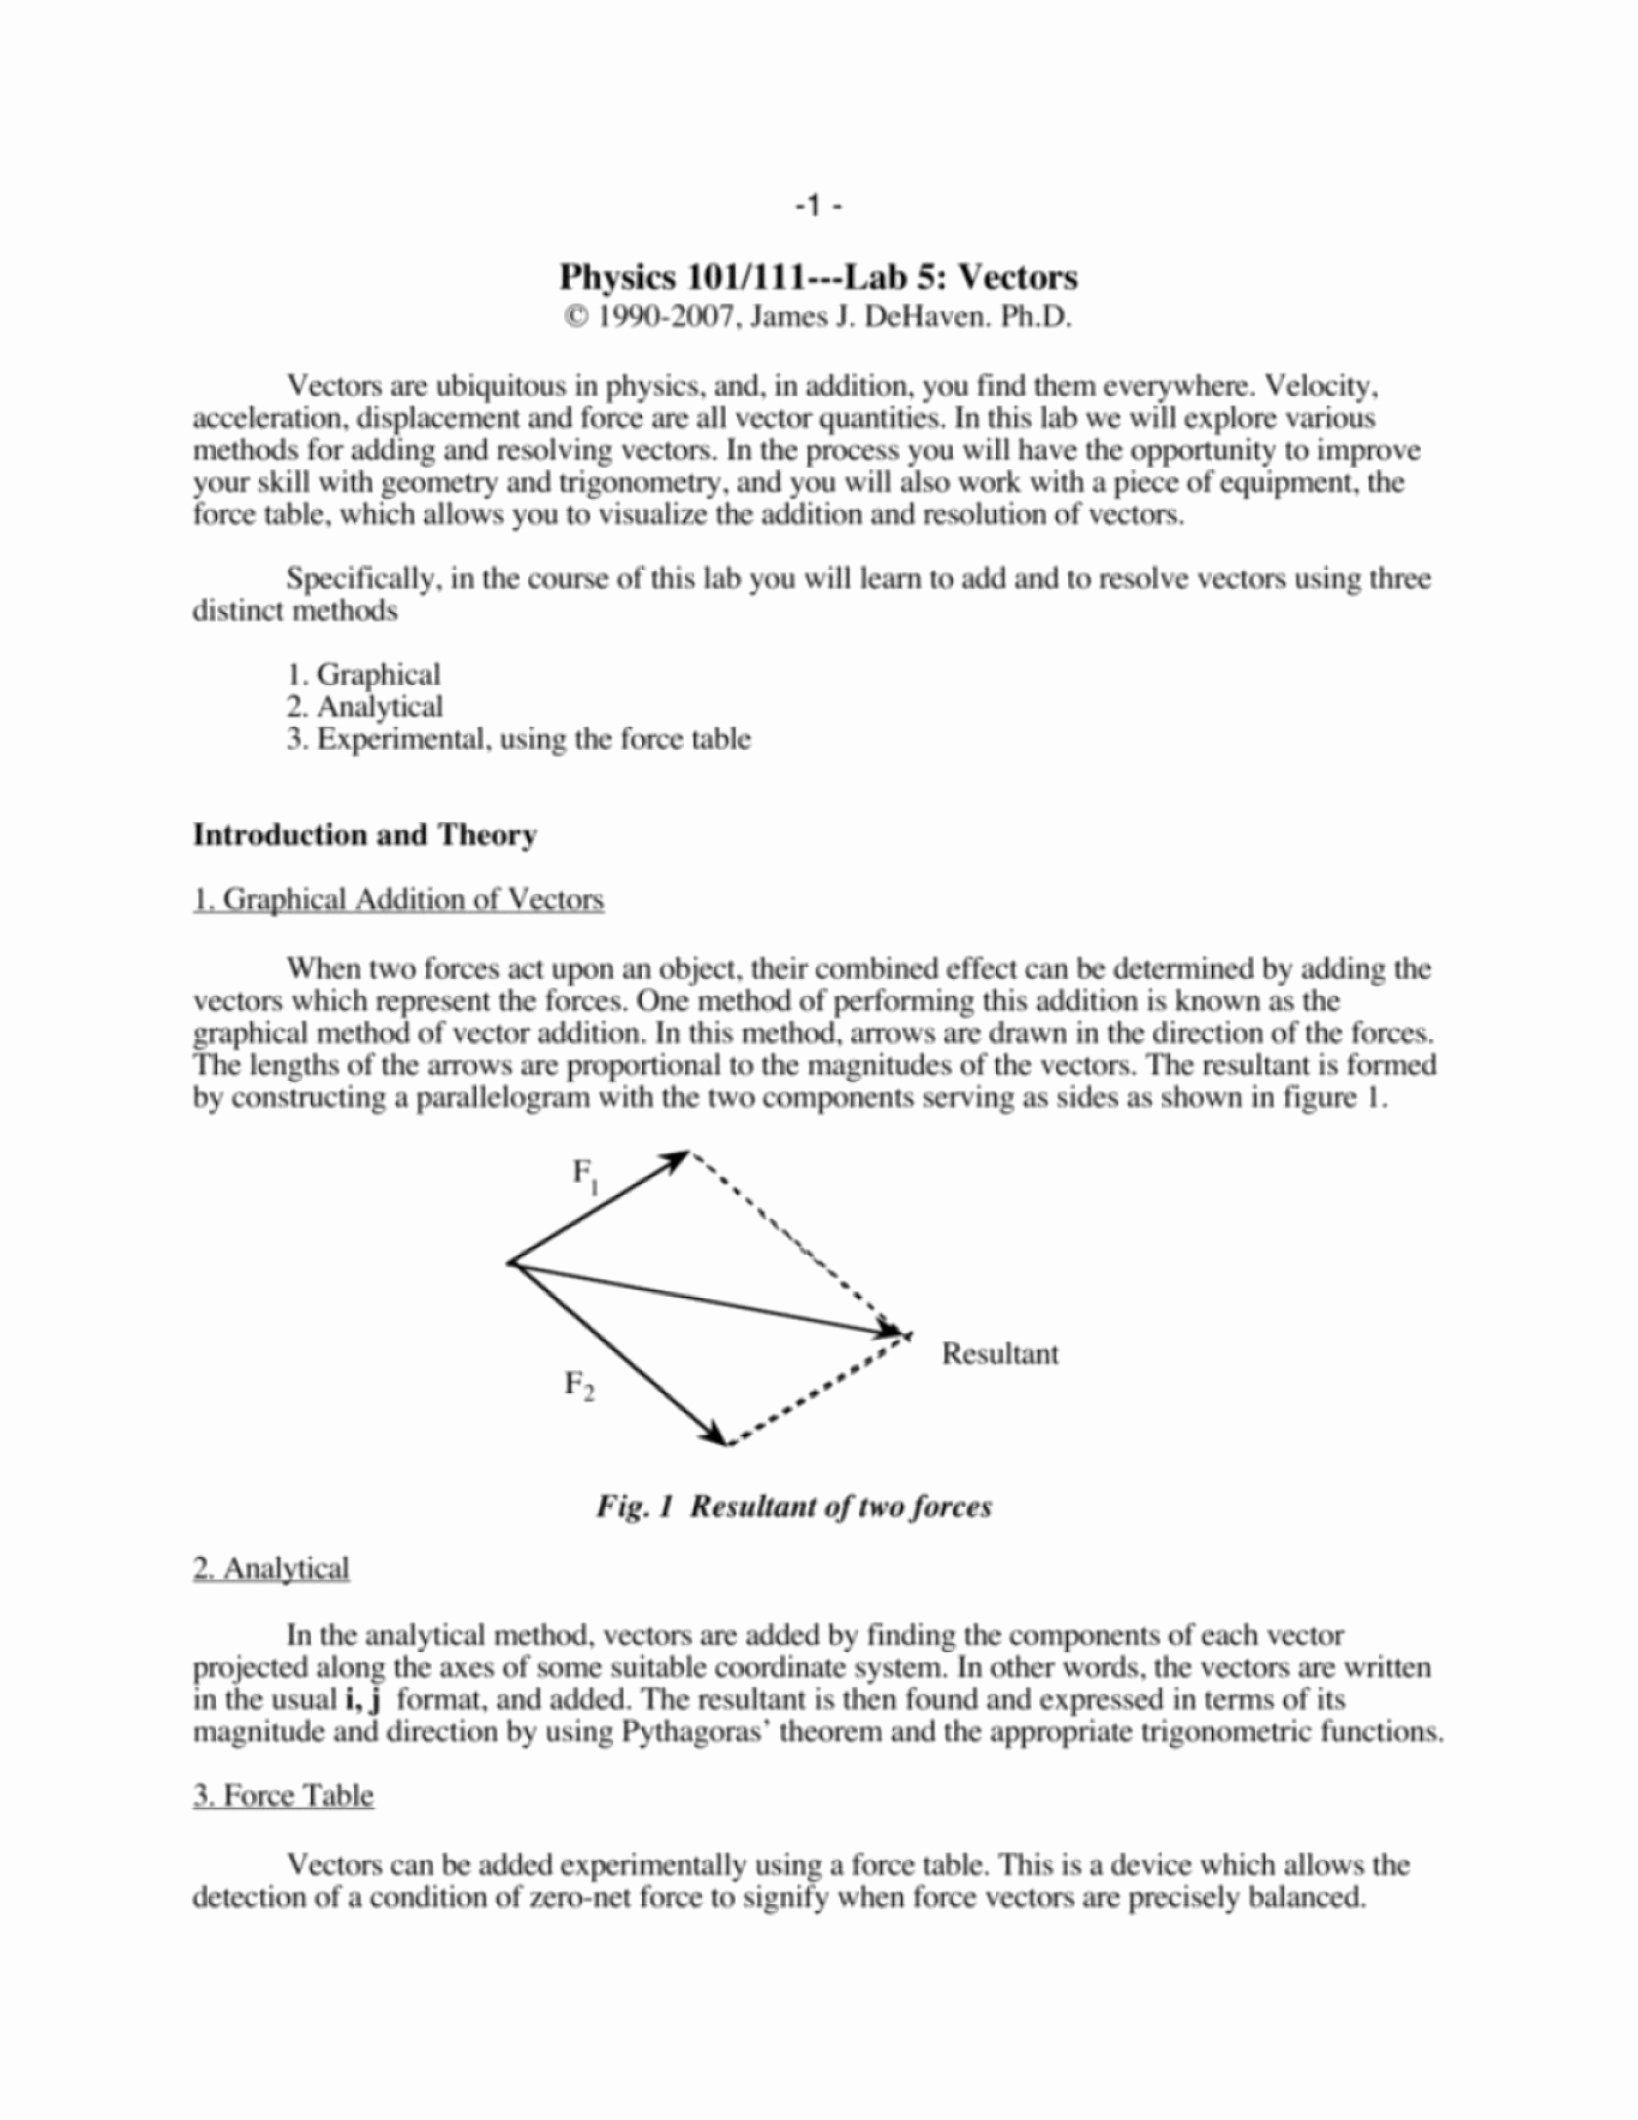 Vector Worksheet Physics Answers Vector Worksheets with Answers